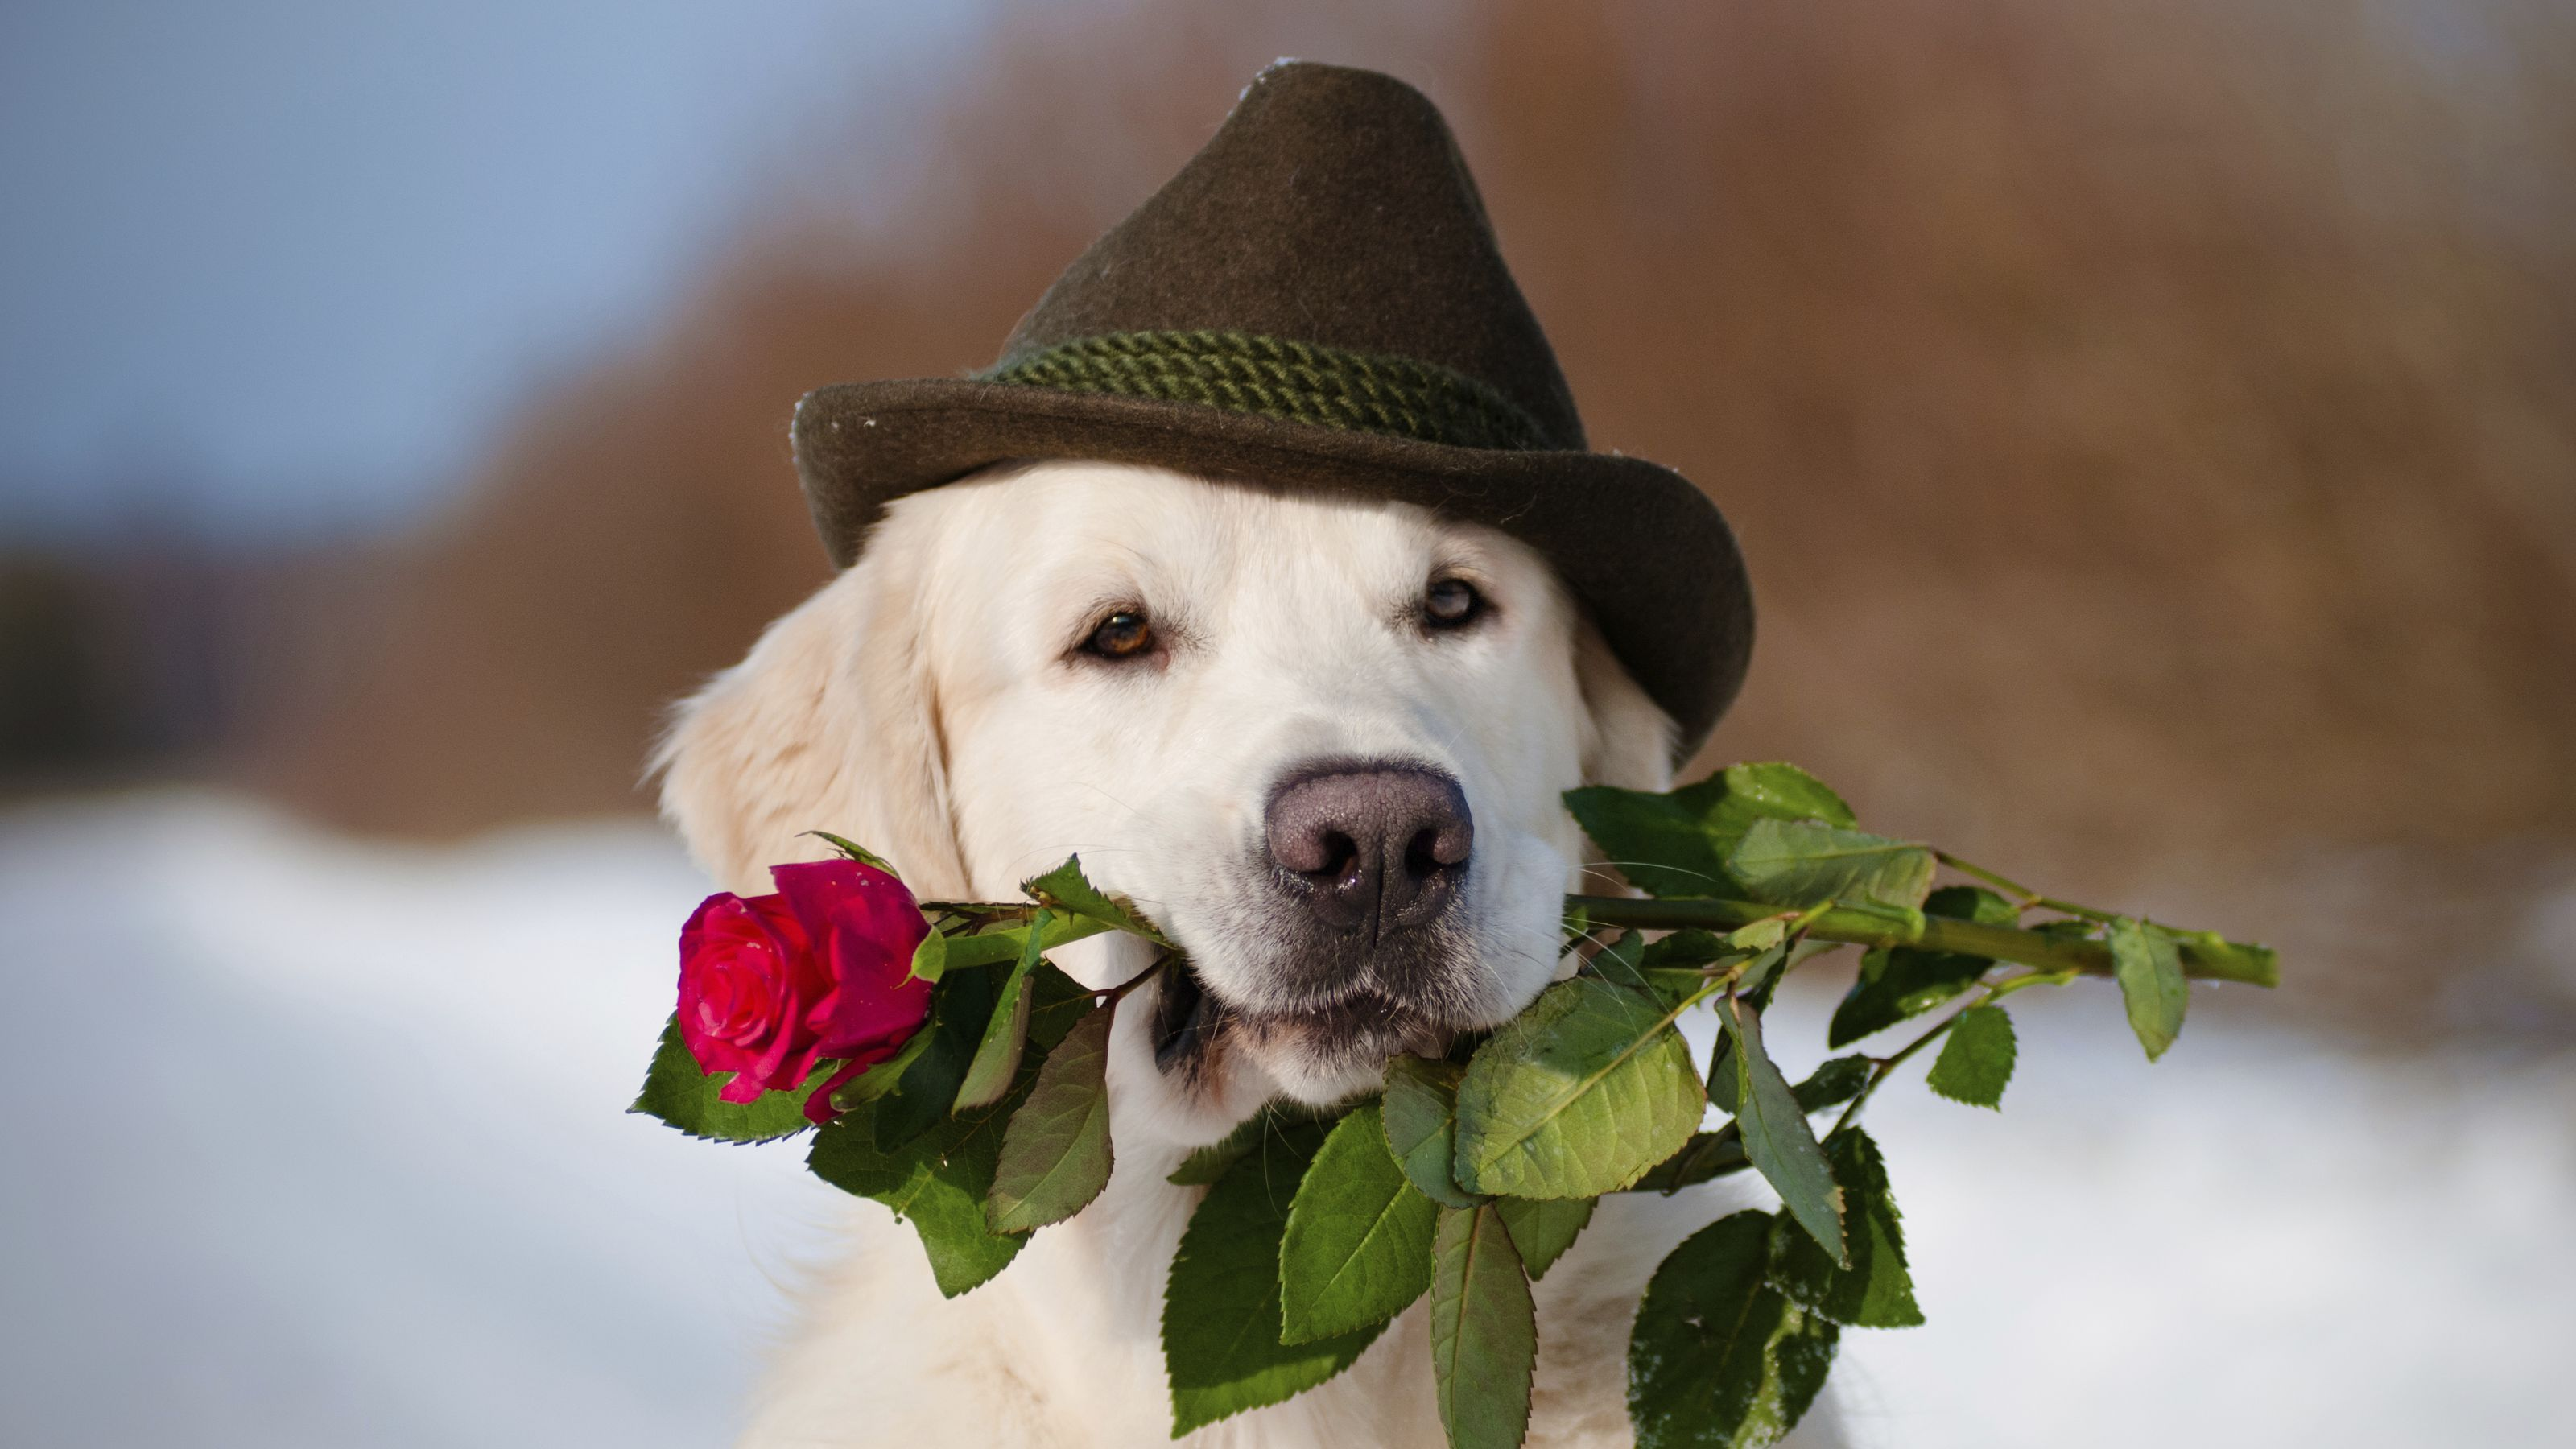 Puppies to deliver flowers on valentine 39 s day - Valentines day pictures with puppies ...